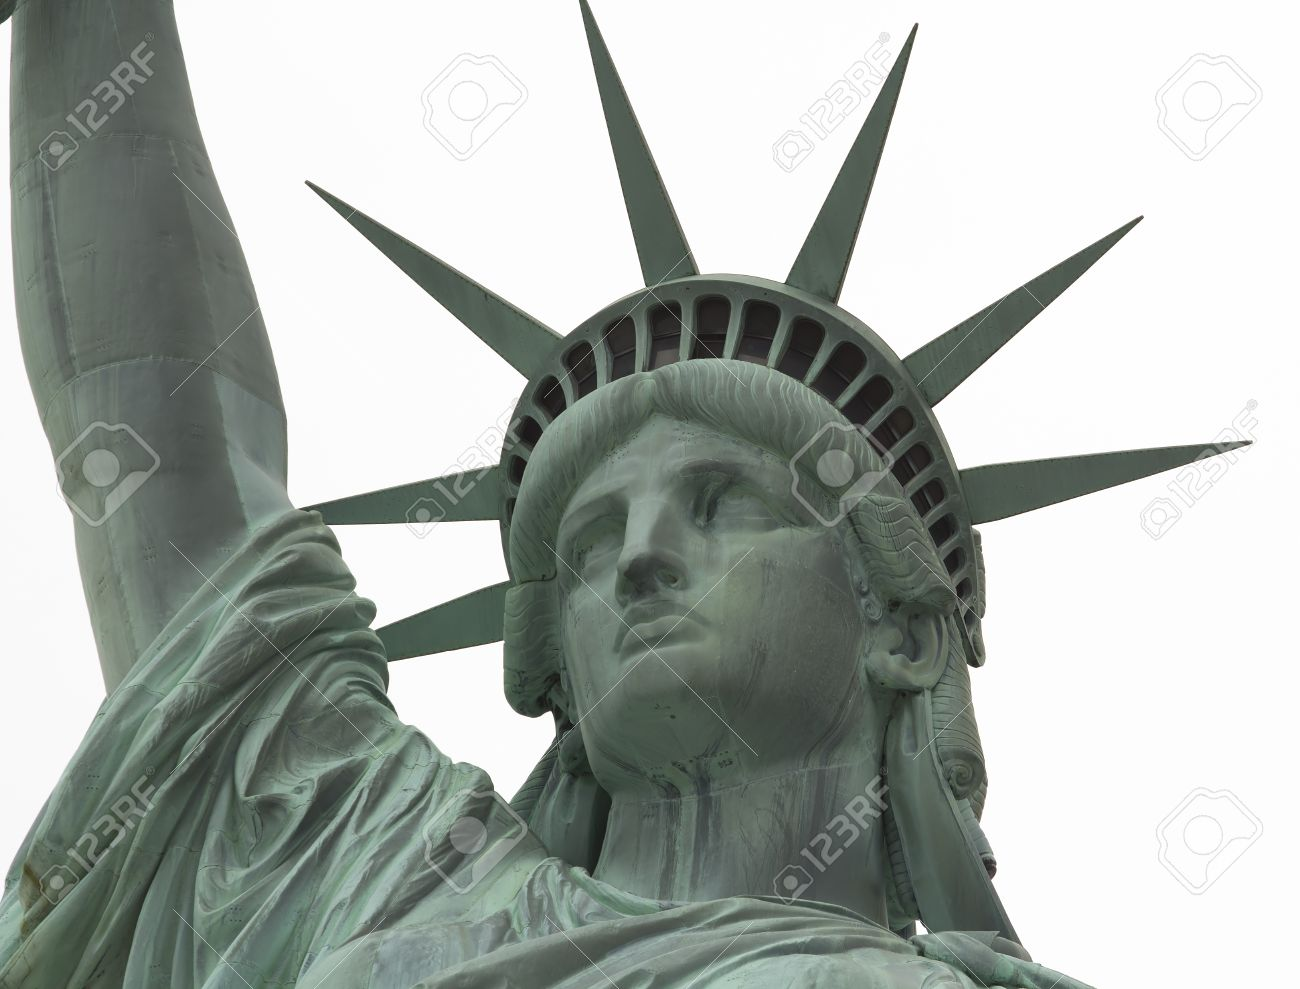 52c97f8a2e7db Statue of Liberty Close up on Face against white background Stock Photo -  17948025